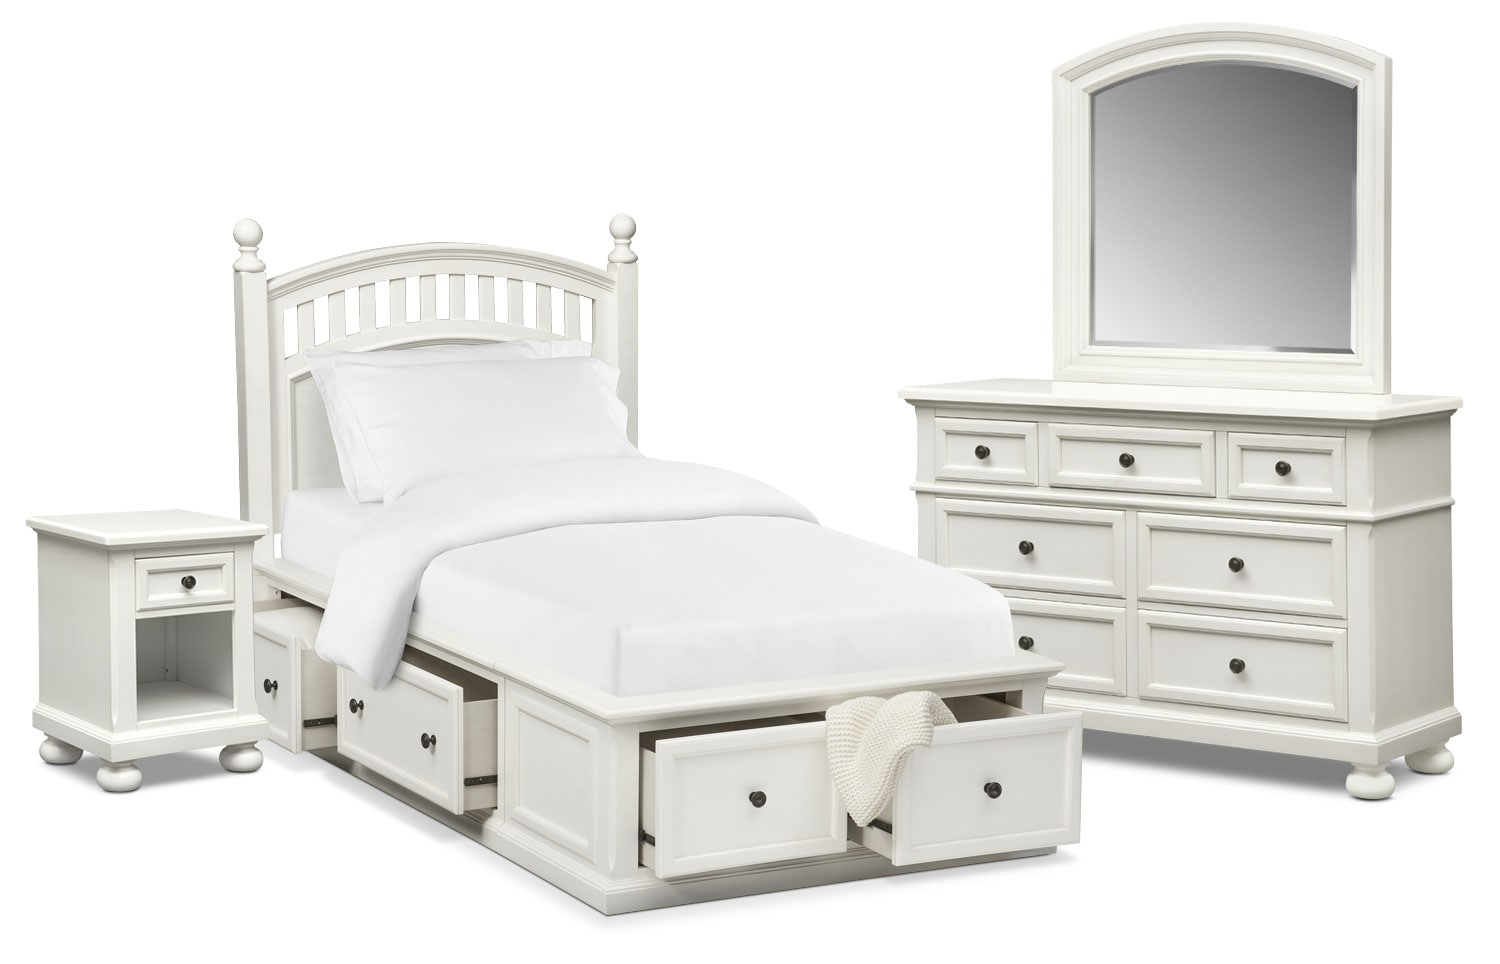 Bedroom Furniture - Hanover Youth 6-Piece Poster Storage Bedroom Set with Nightstand, Dresser and Mirror